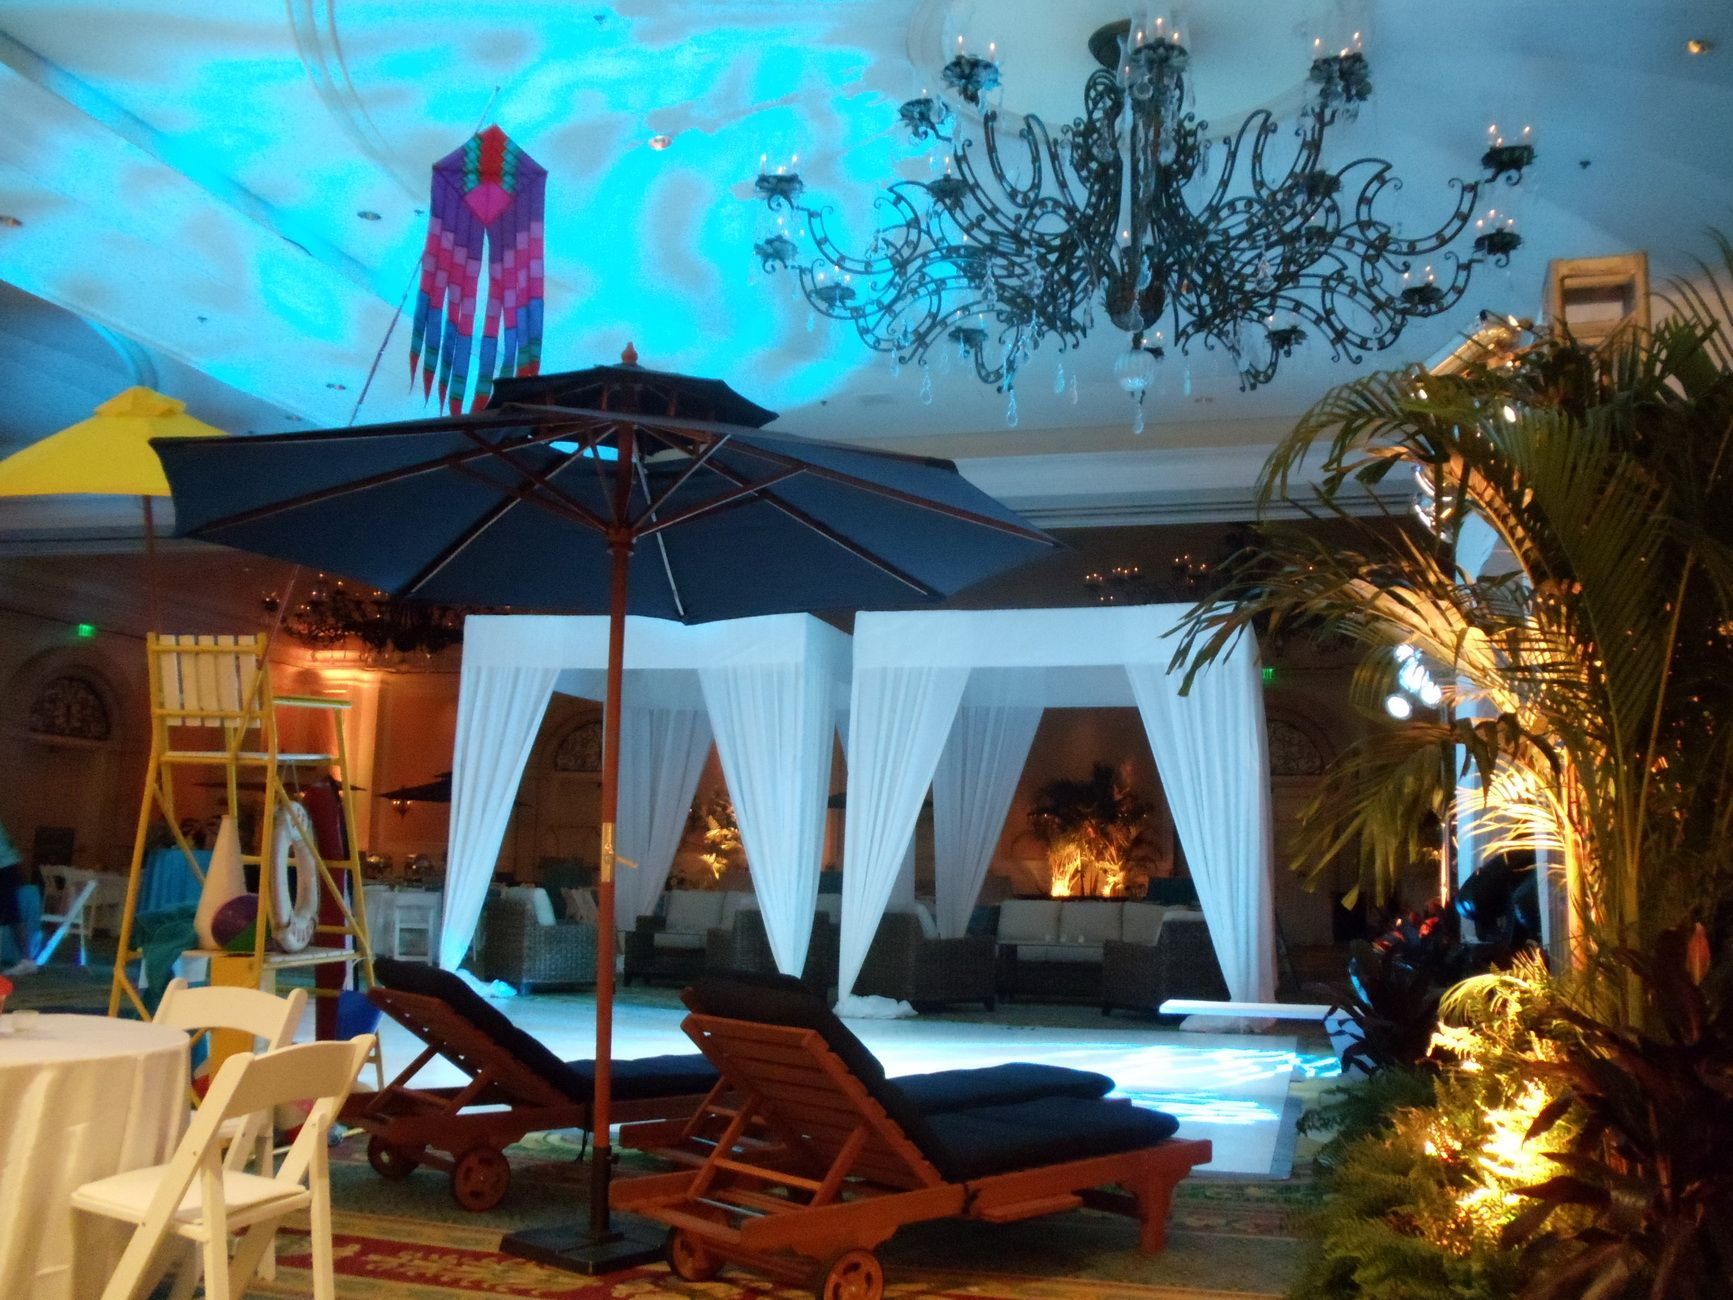 Indoor Pool Party Ideas kids beach party kids pool party ideas beach party food probably for an indoor pool party but can still use this for ideas holidays pinterest kid Great Indoor Pool Party Ideas